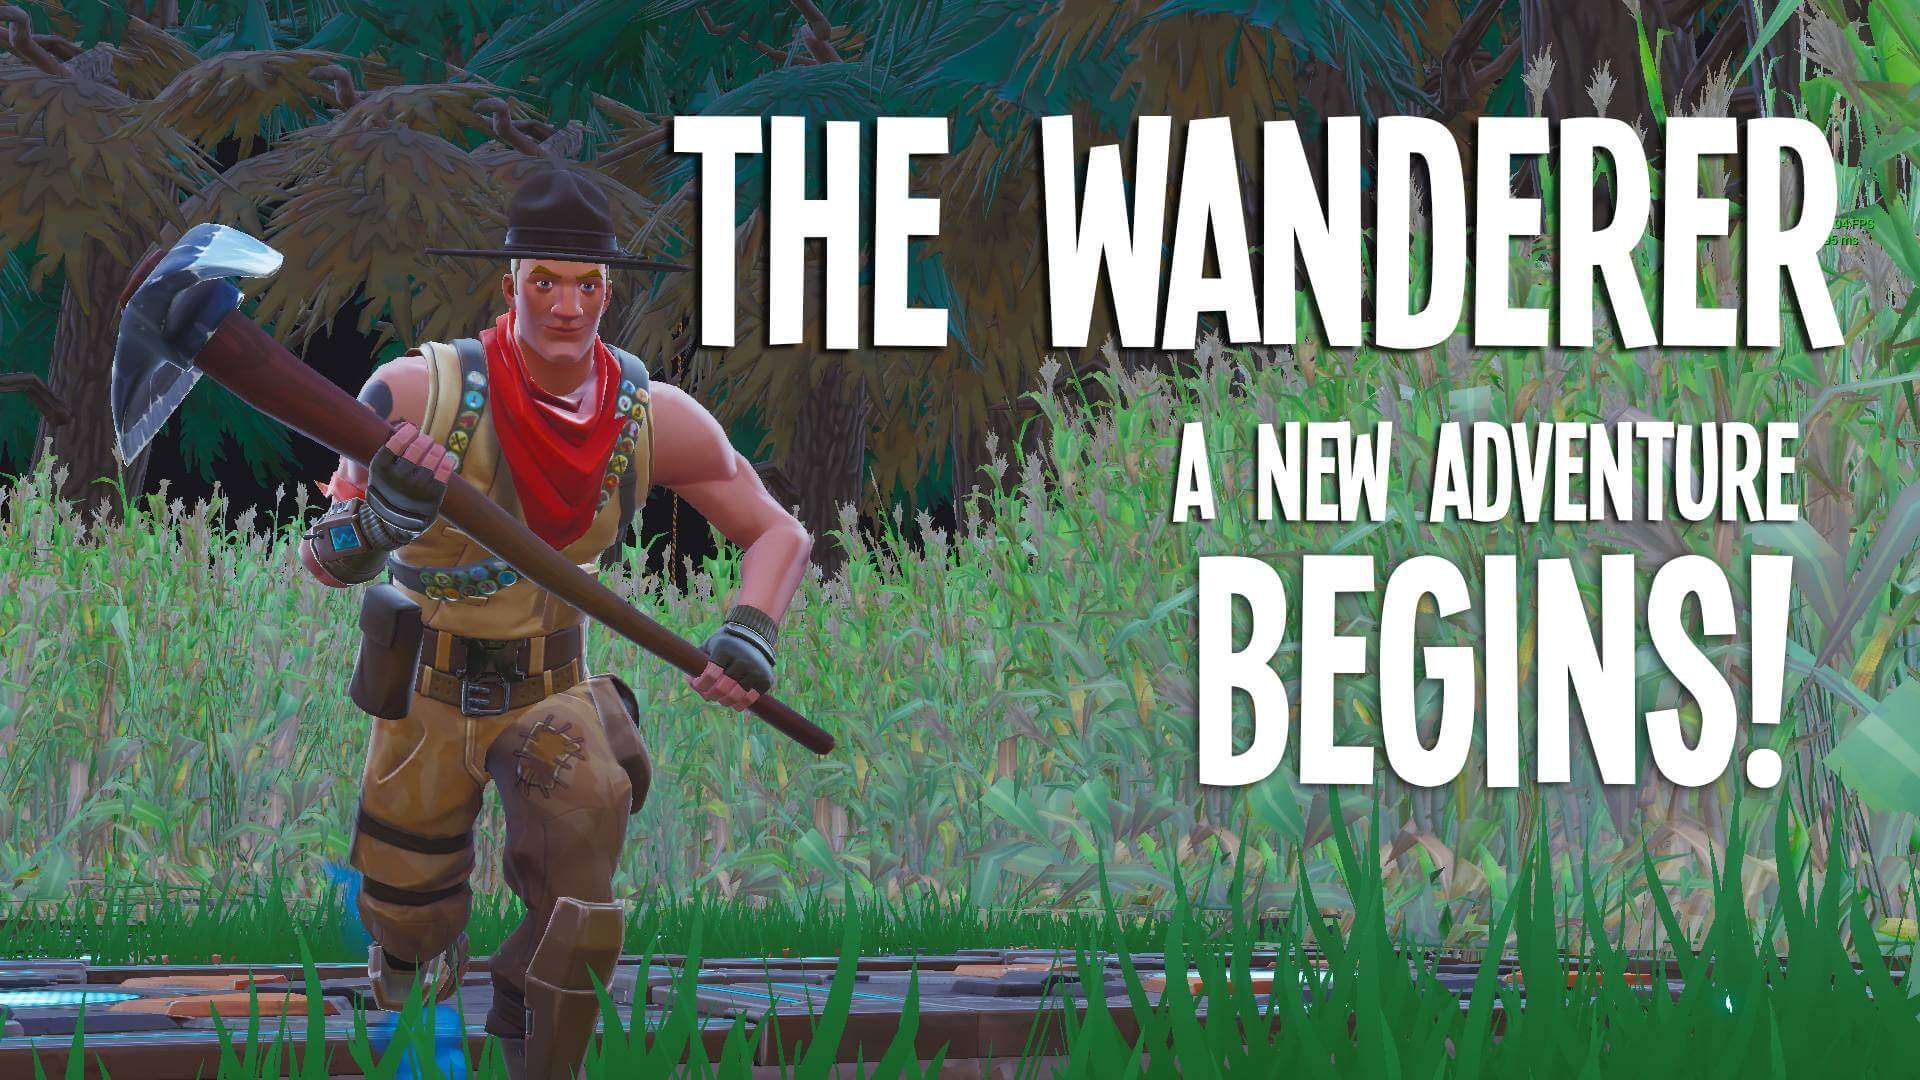 THE WANDERER: A NEW ADVENTURE BEGINS!!